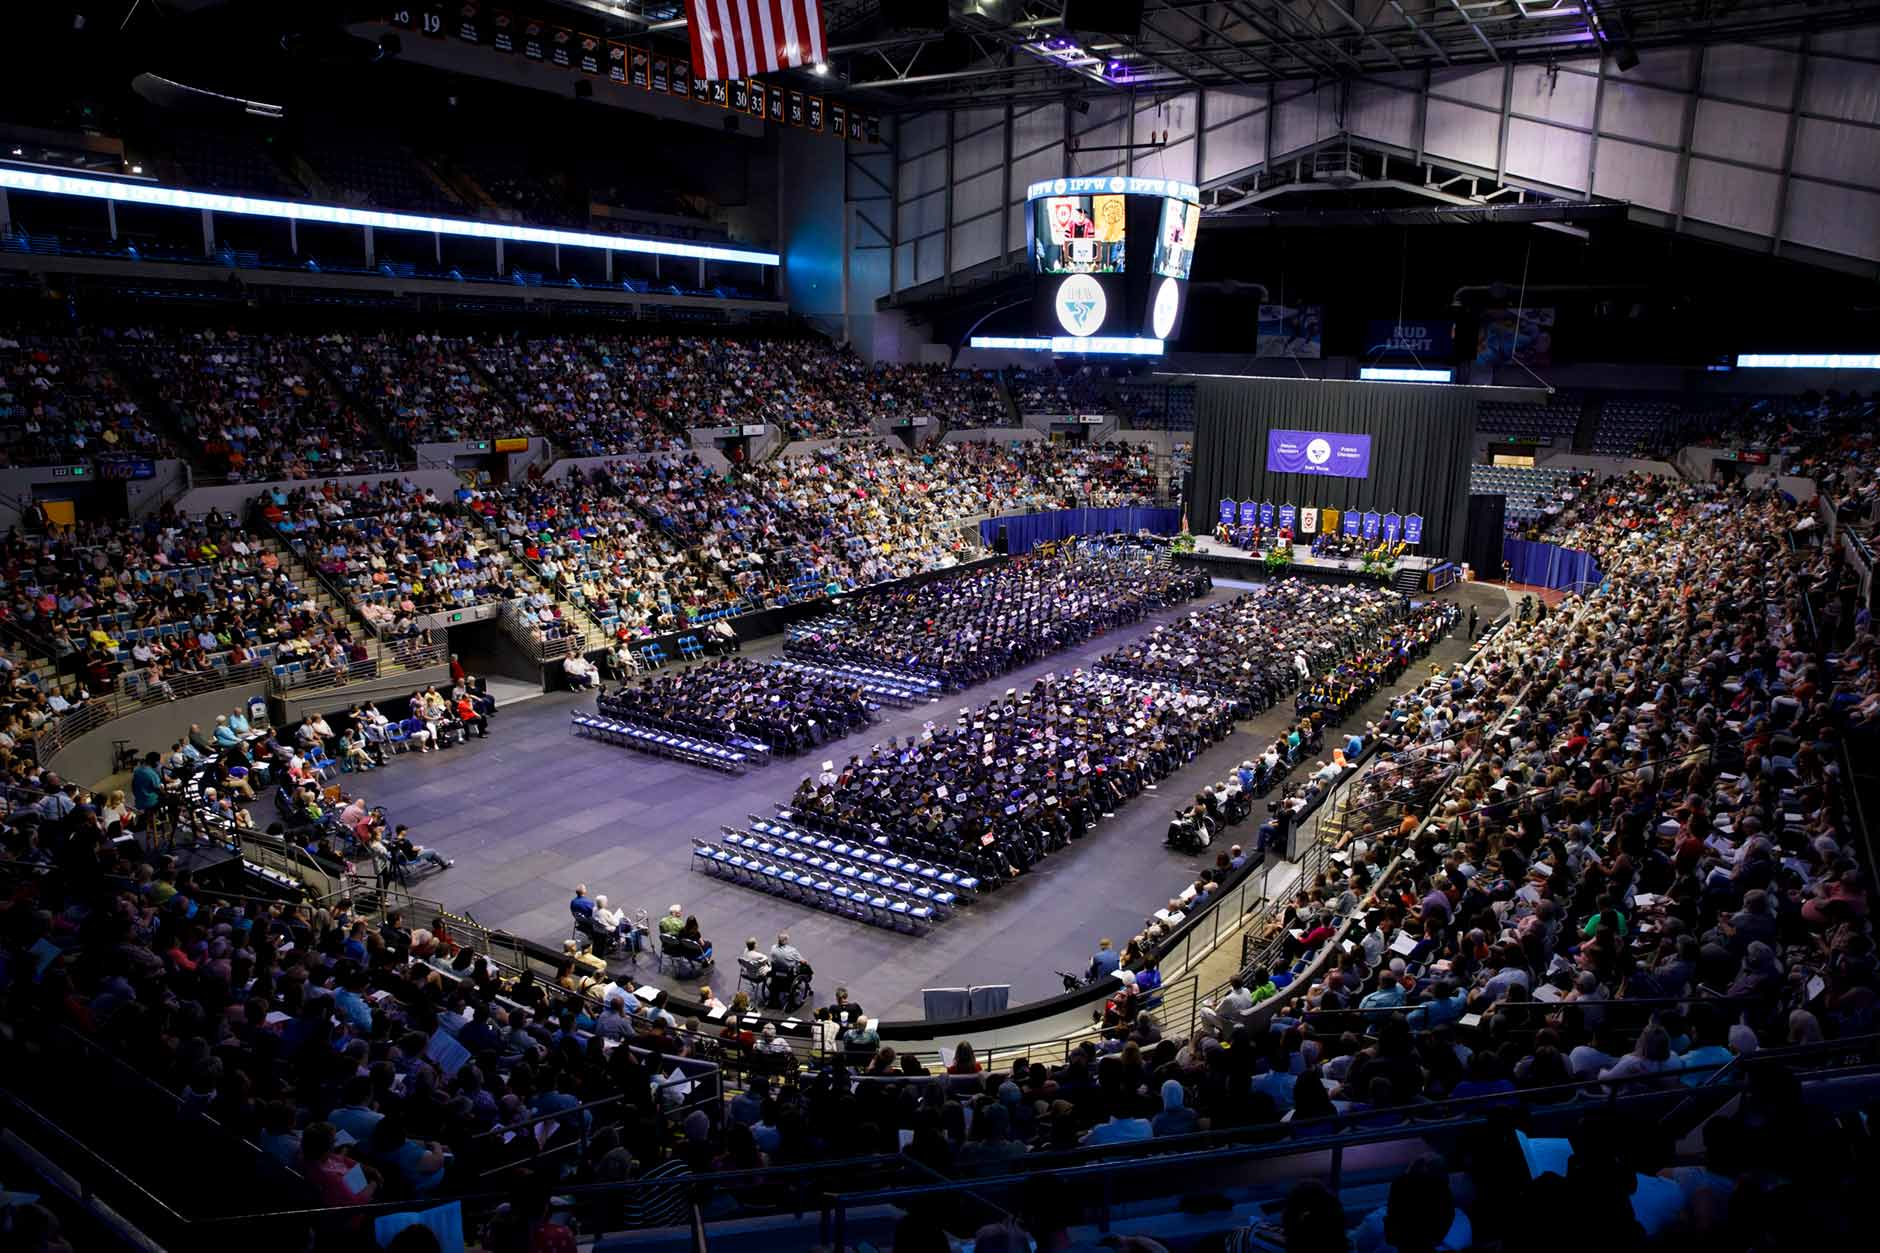 Indiana University-Purdue University Fort Wayne Commencement